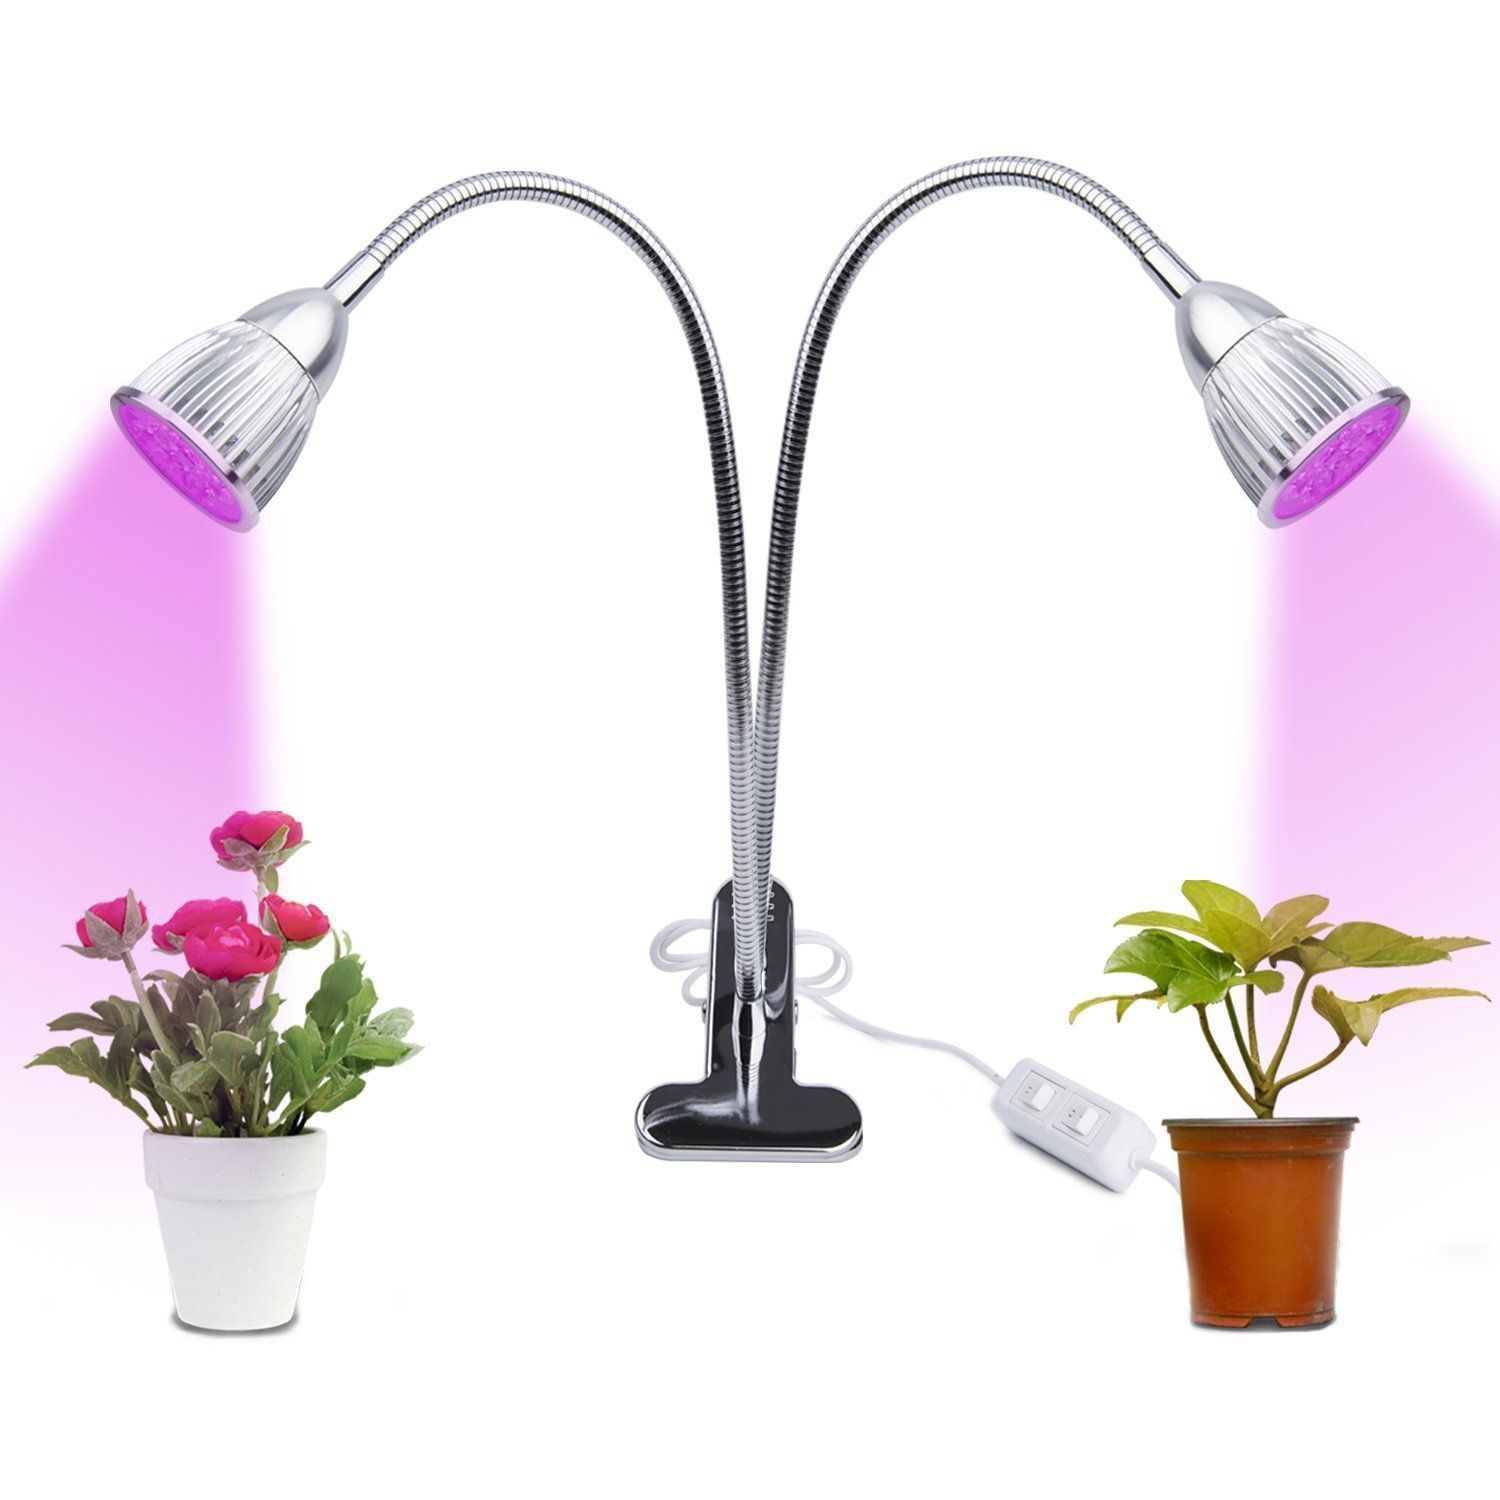 light my home galaxyhydro review plant product top usa led best grow lighting lights